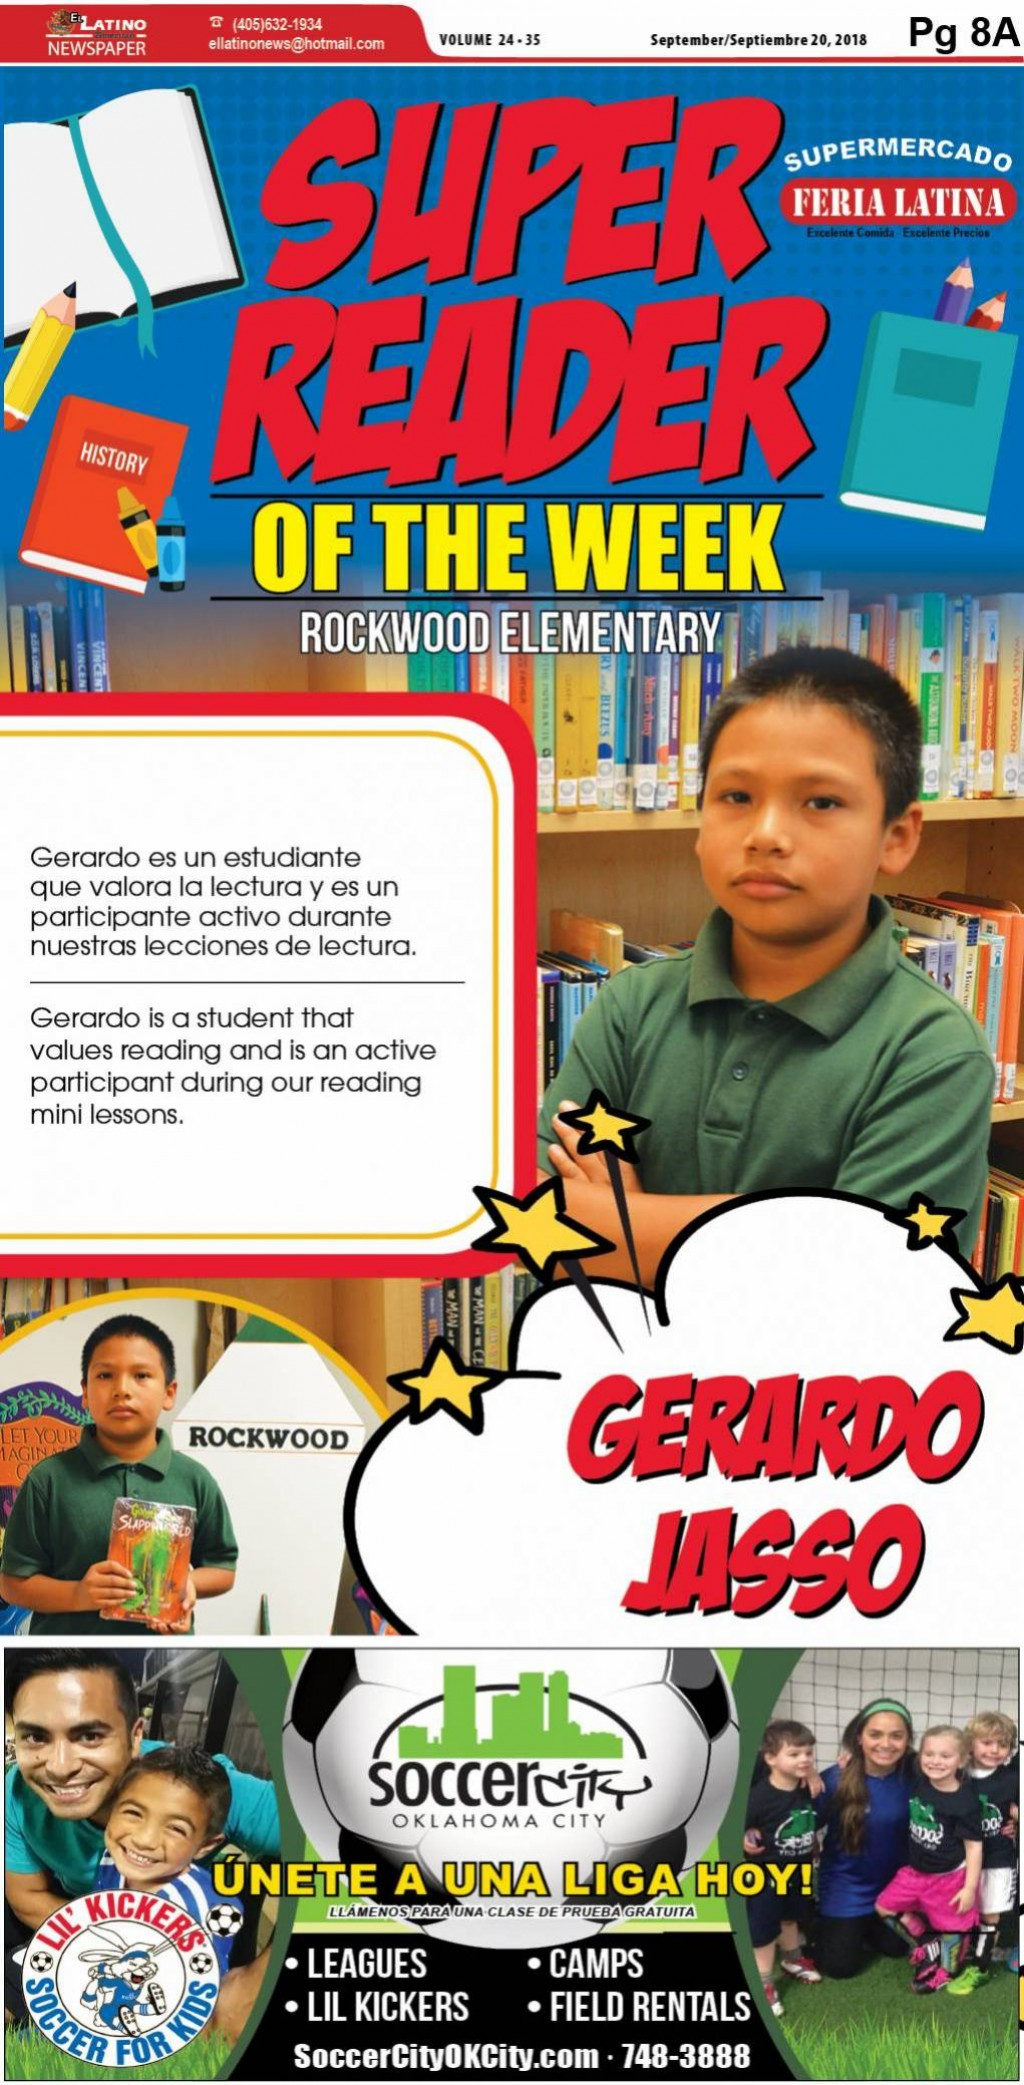 Super Reader of the Week: Gerardo Jasso